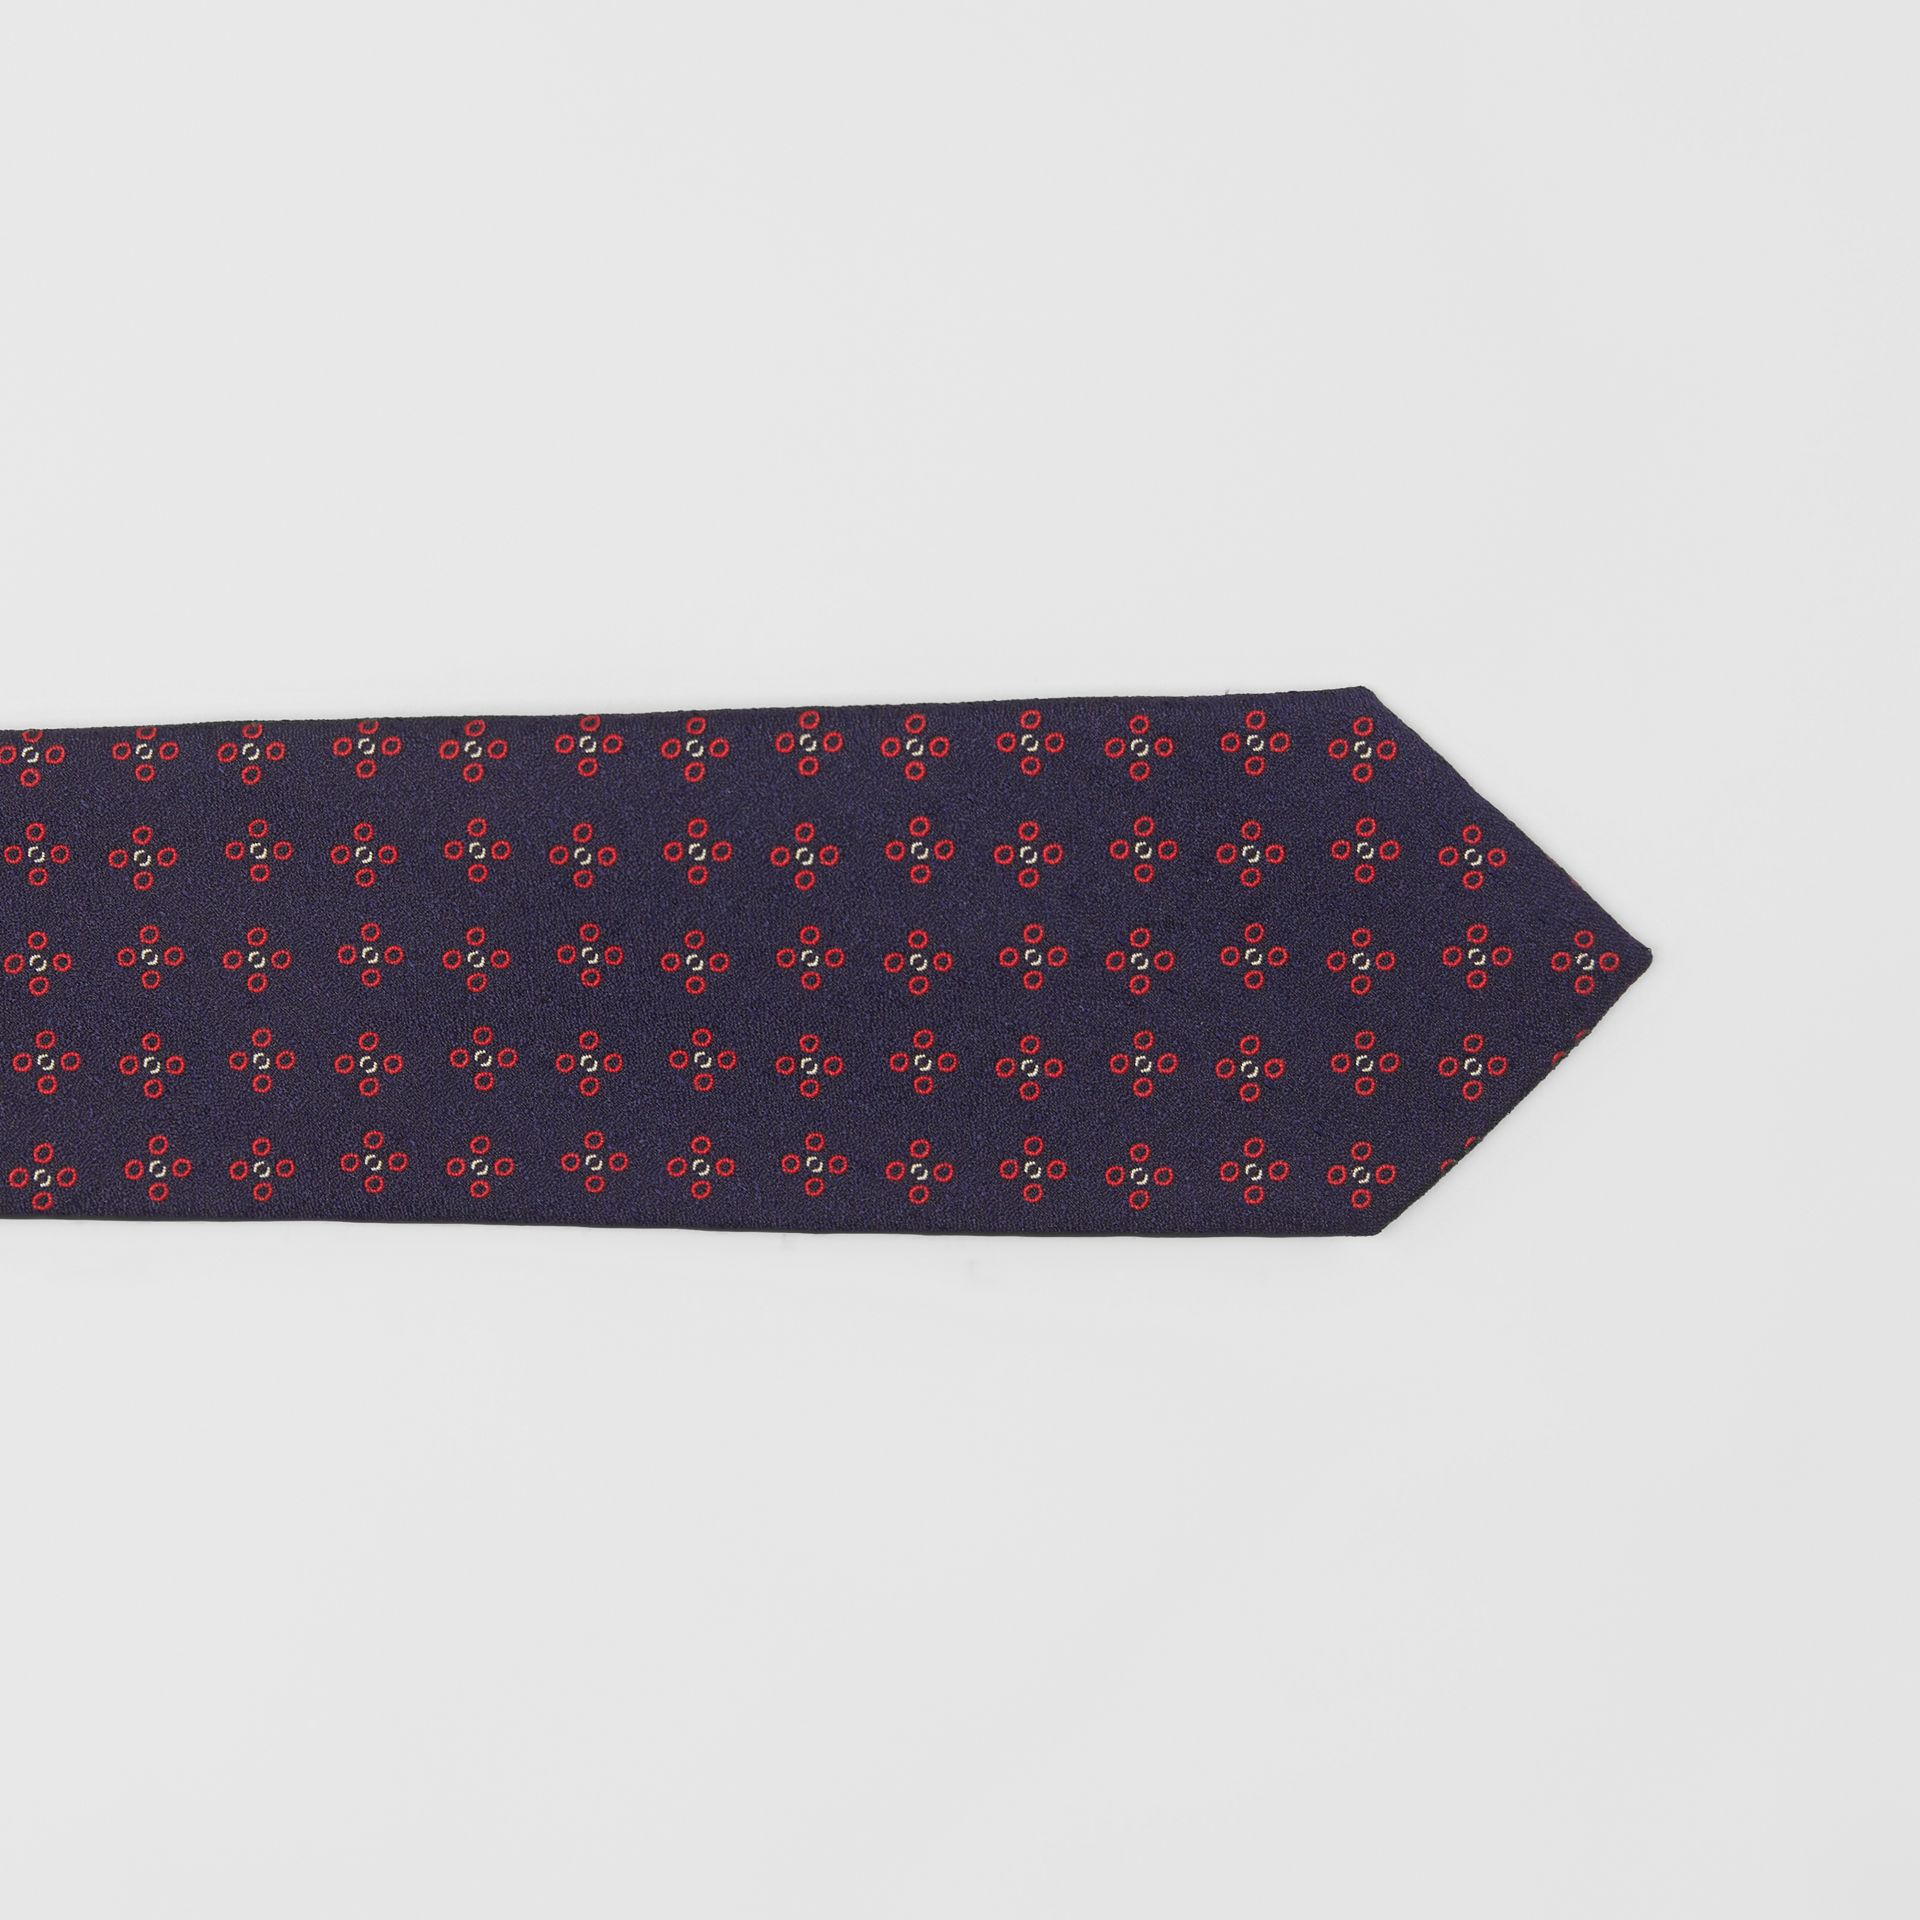 Modern Cut Graphic Floral Silk Jacquard Tie in Military Red - Men | Burberry - gallery image 1